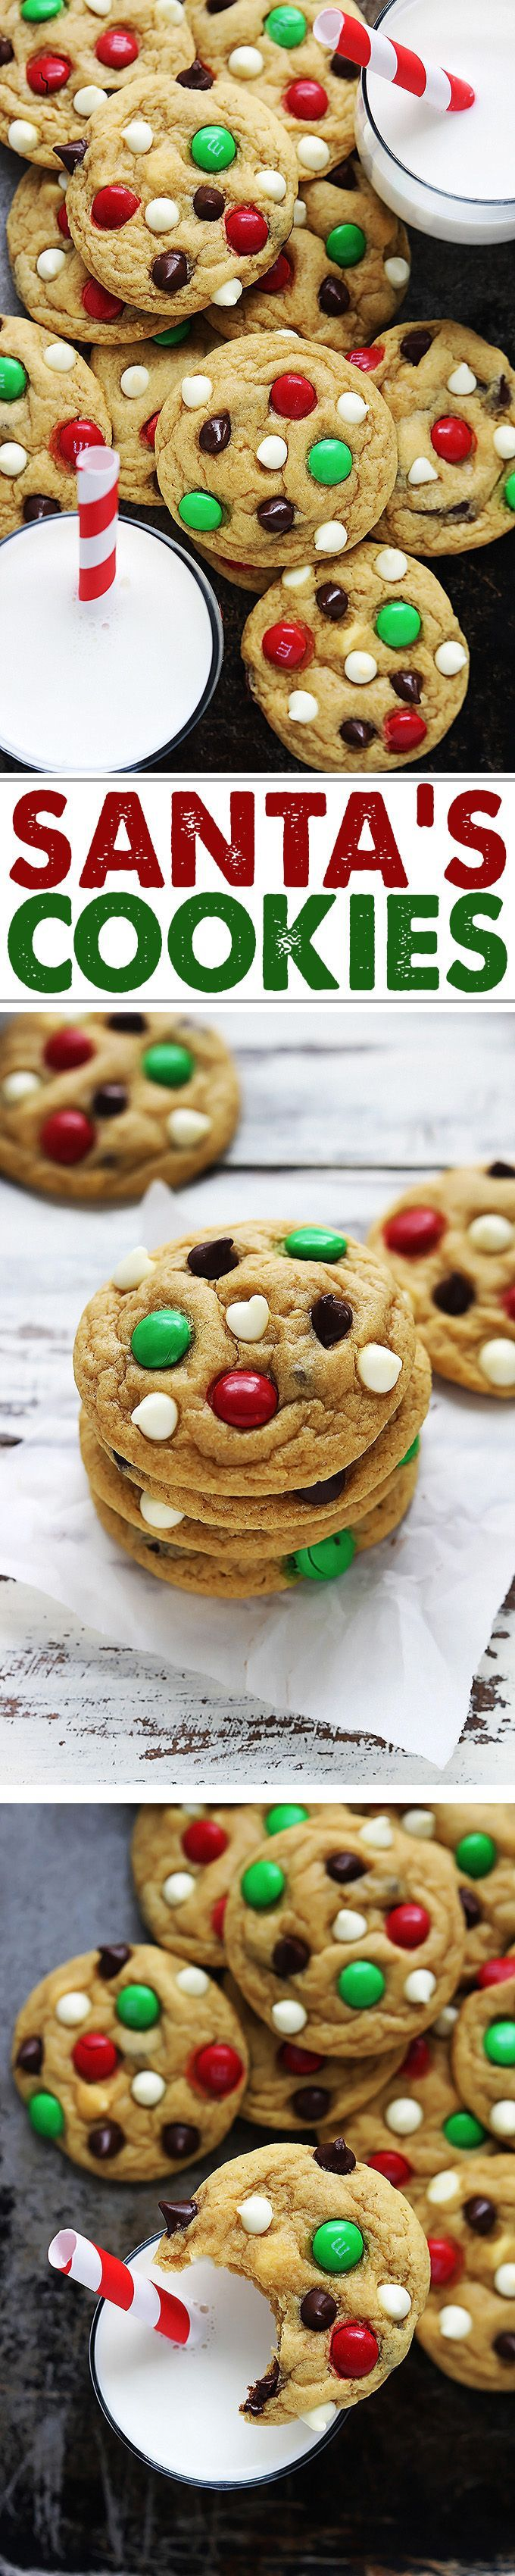 Coloful chocolate chip cookies with M&M's. The perfect cookies for Santa. #PANDORAloves